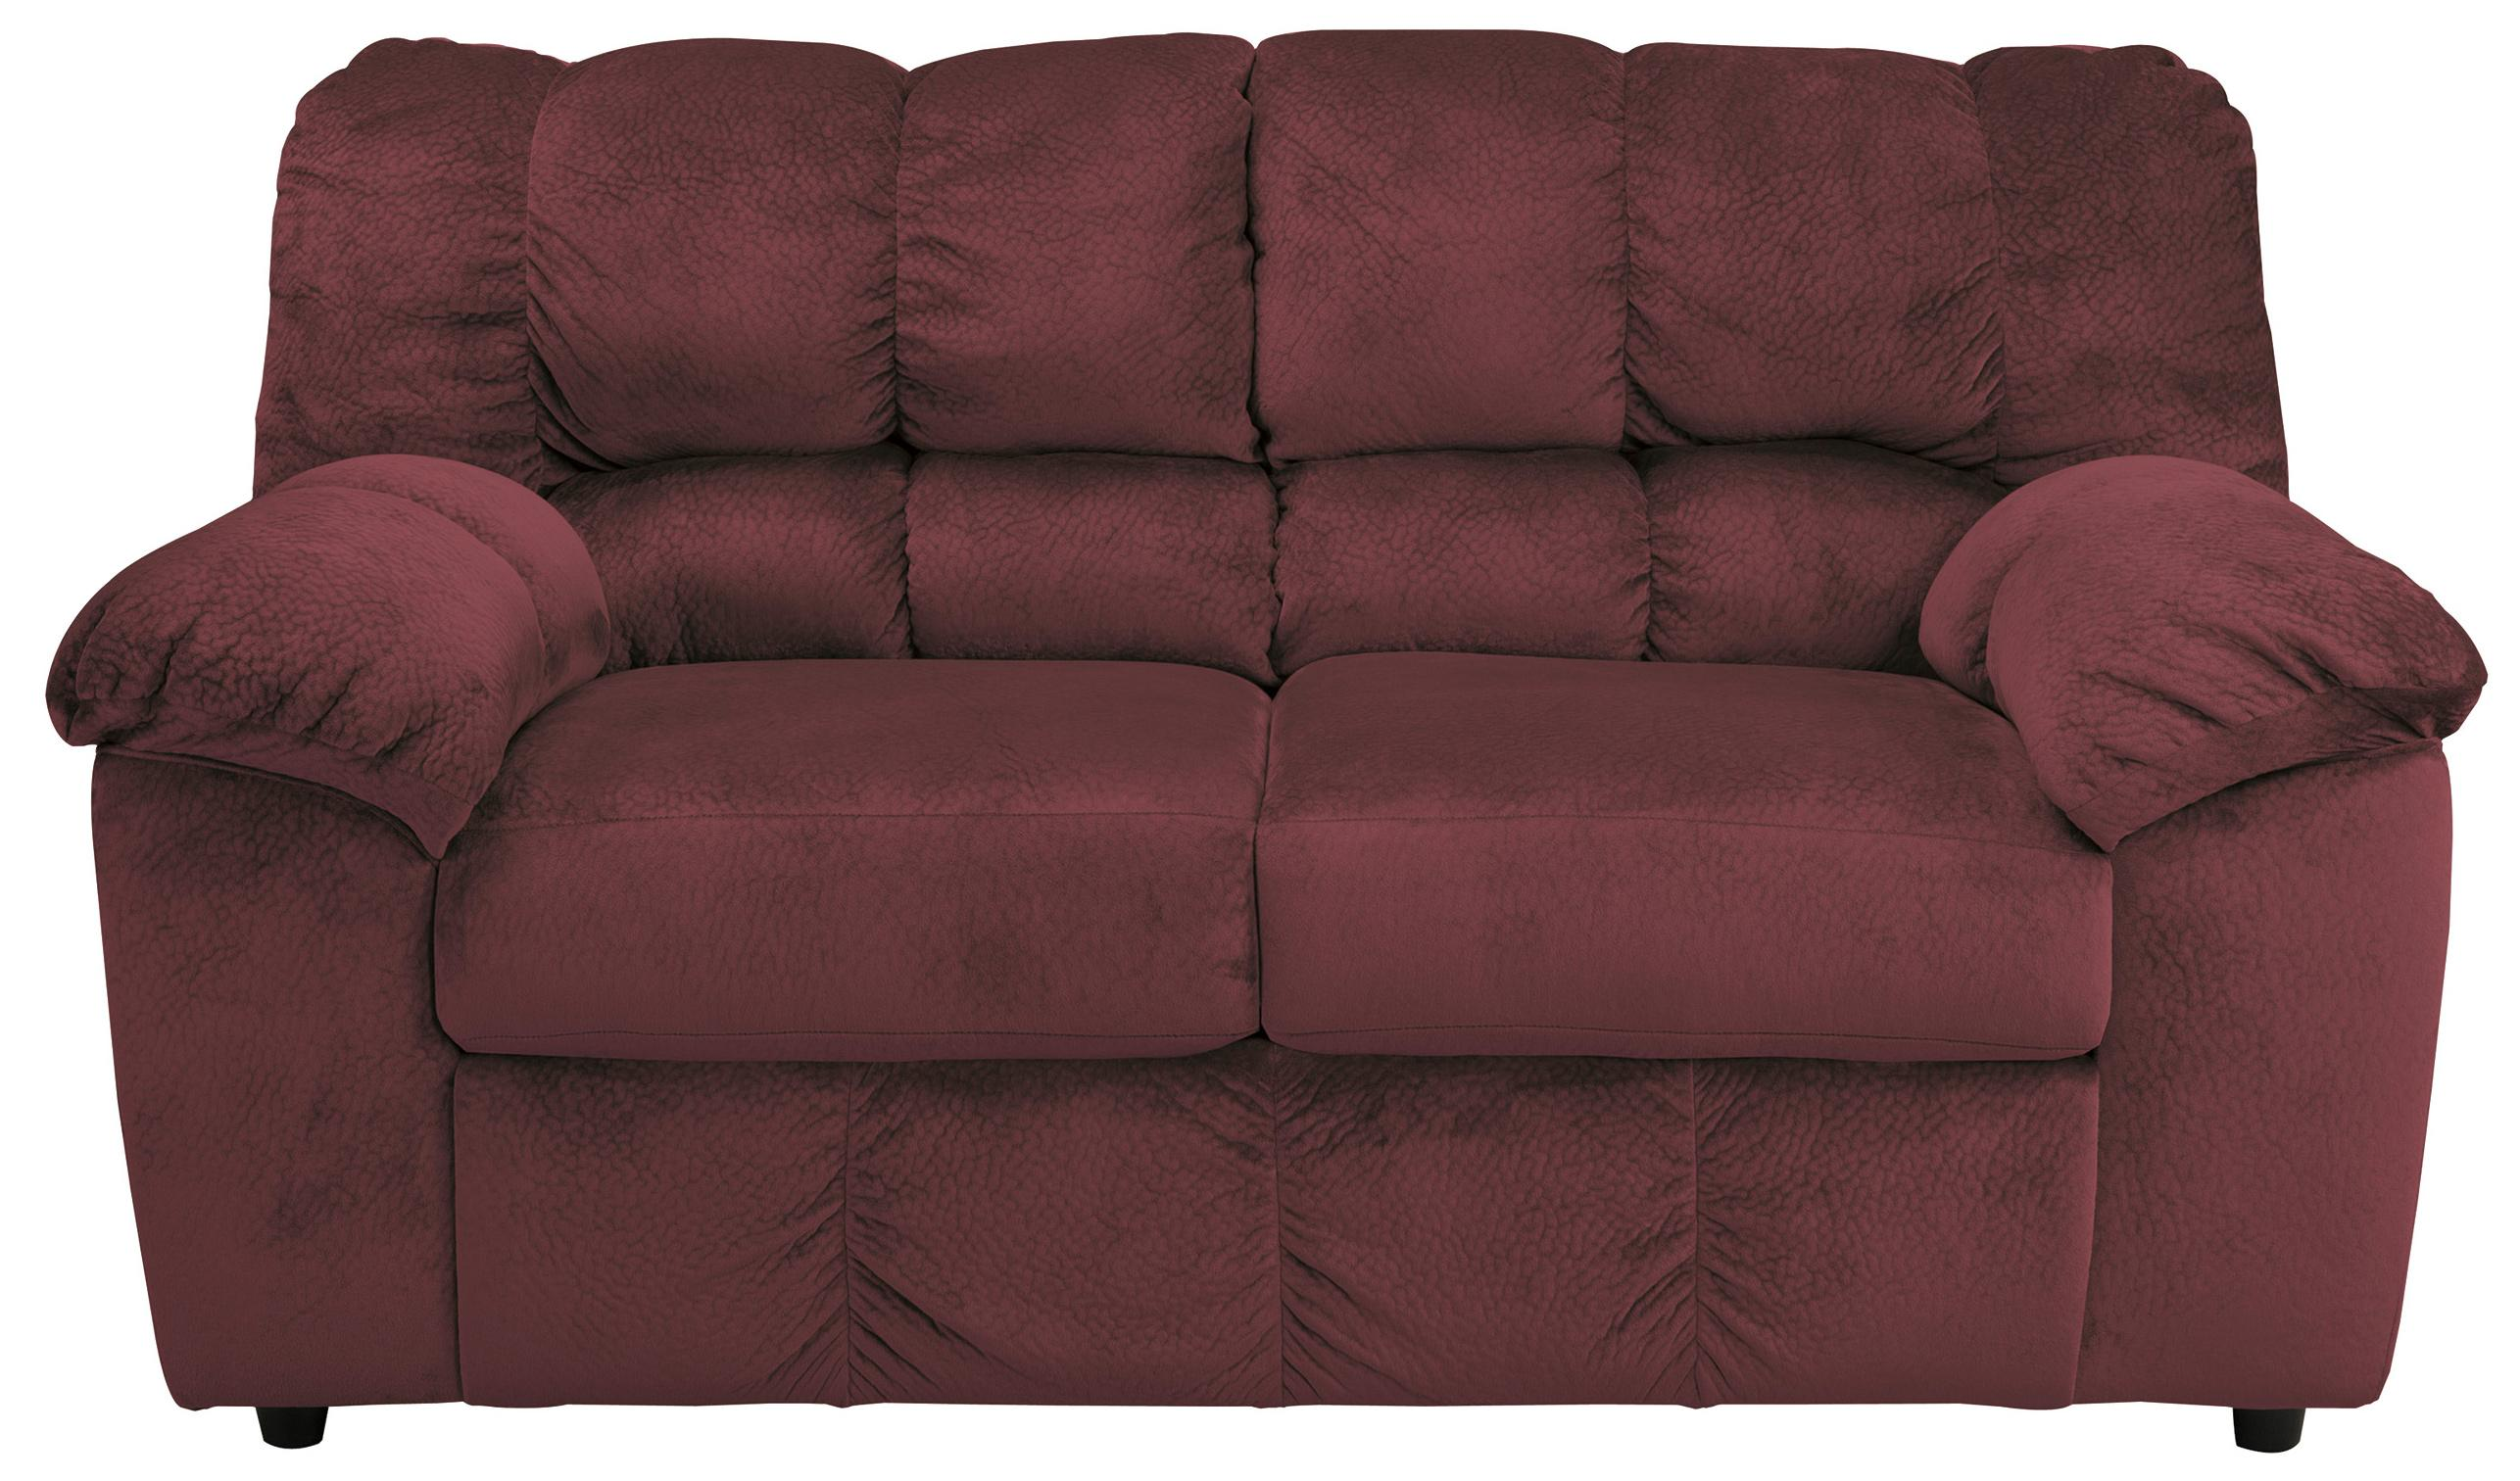 Signature Design by Ashley Julson - Burgundy Loveseat - Item Number: 2660235